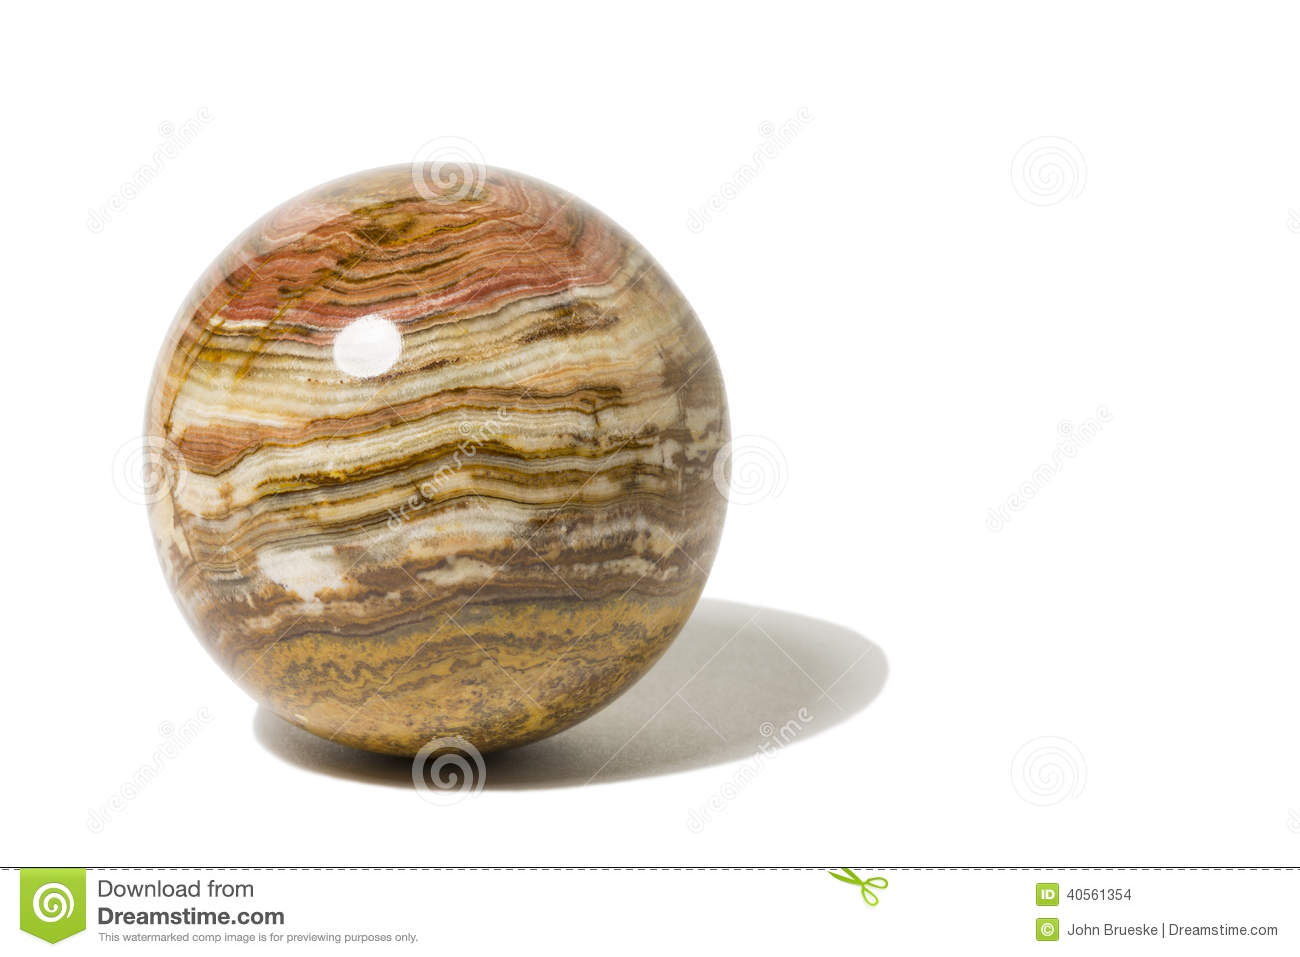 marble rock singles A picture gallery of metamorphic rocks including amphibolite, gneiss, hornfels, marble, novaculite, phyllite, quartzite, schist, slate and soapstone.